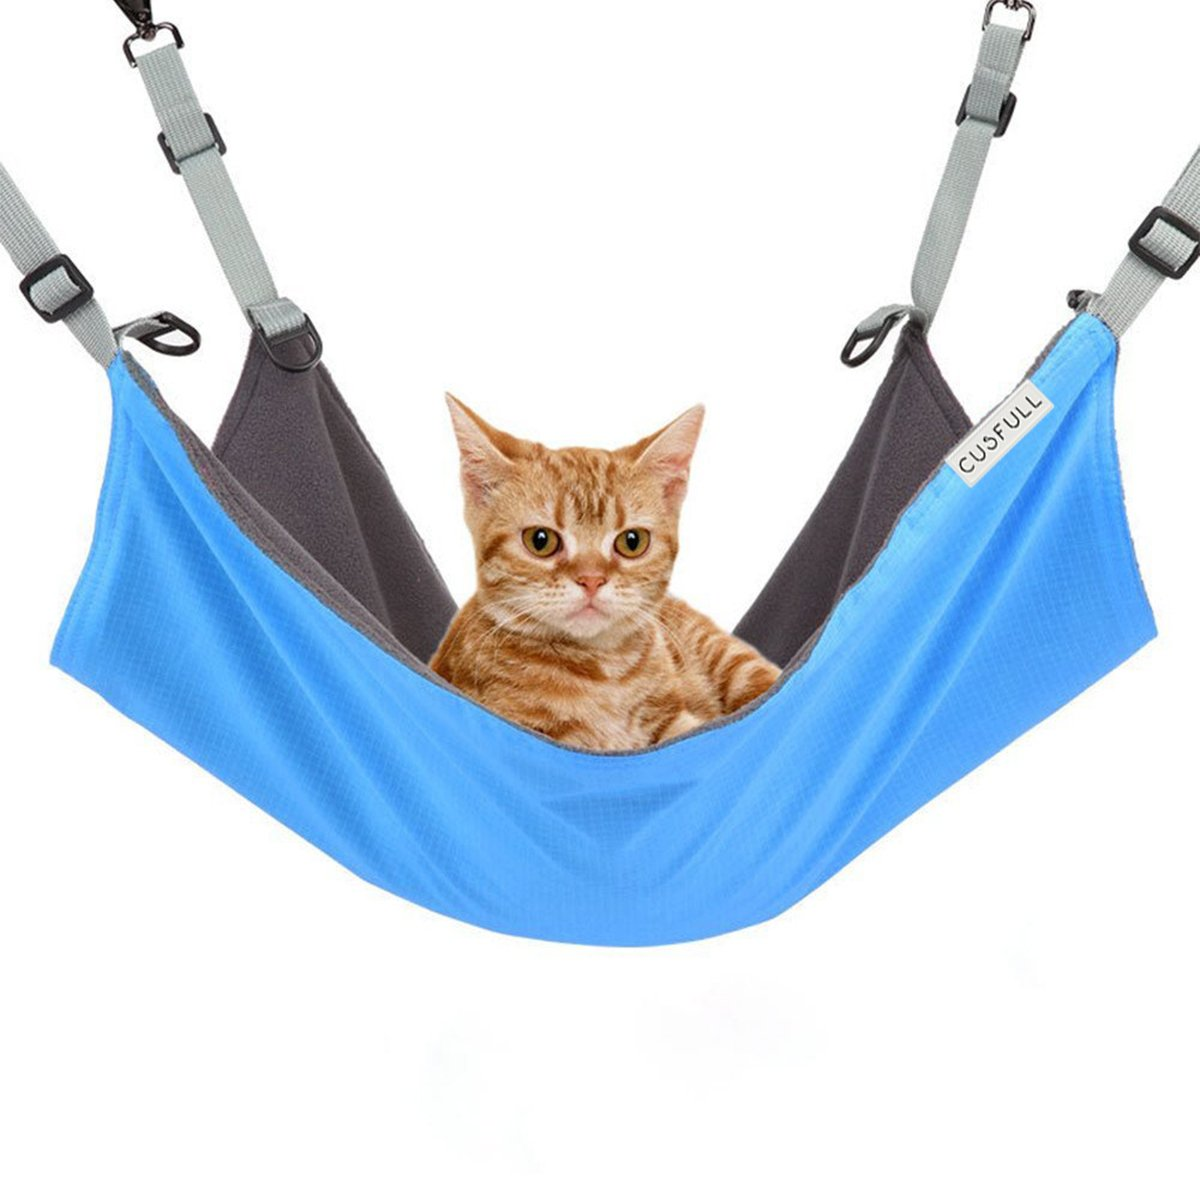 CUSFULL Cat Hammock Bed Comfortable Hanging Pet Hammock Bed Cats/Small Dogs/Rabbits/Other Small Animals 22 x17 in (Blue)